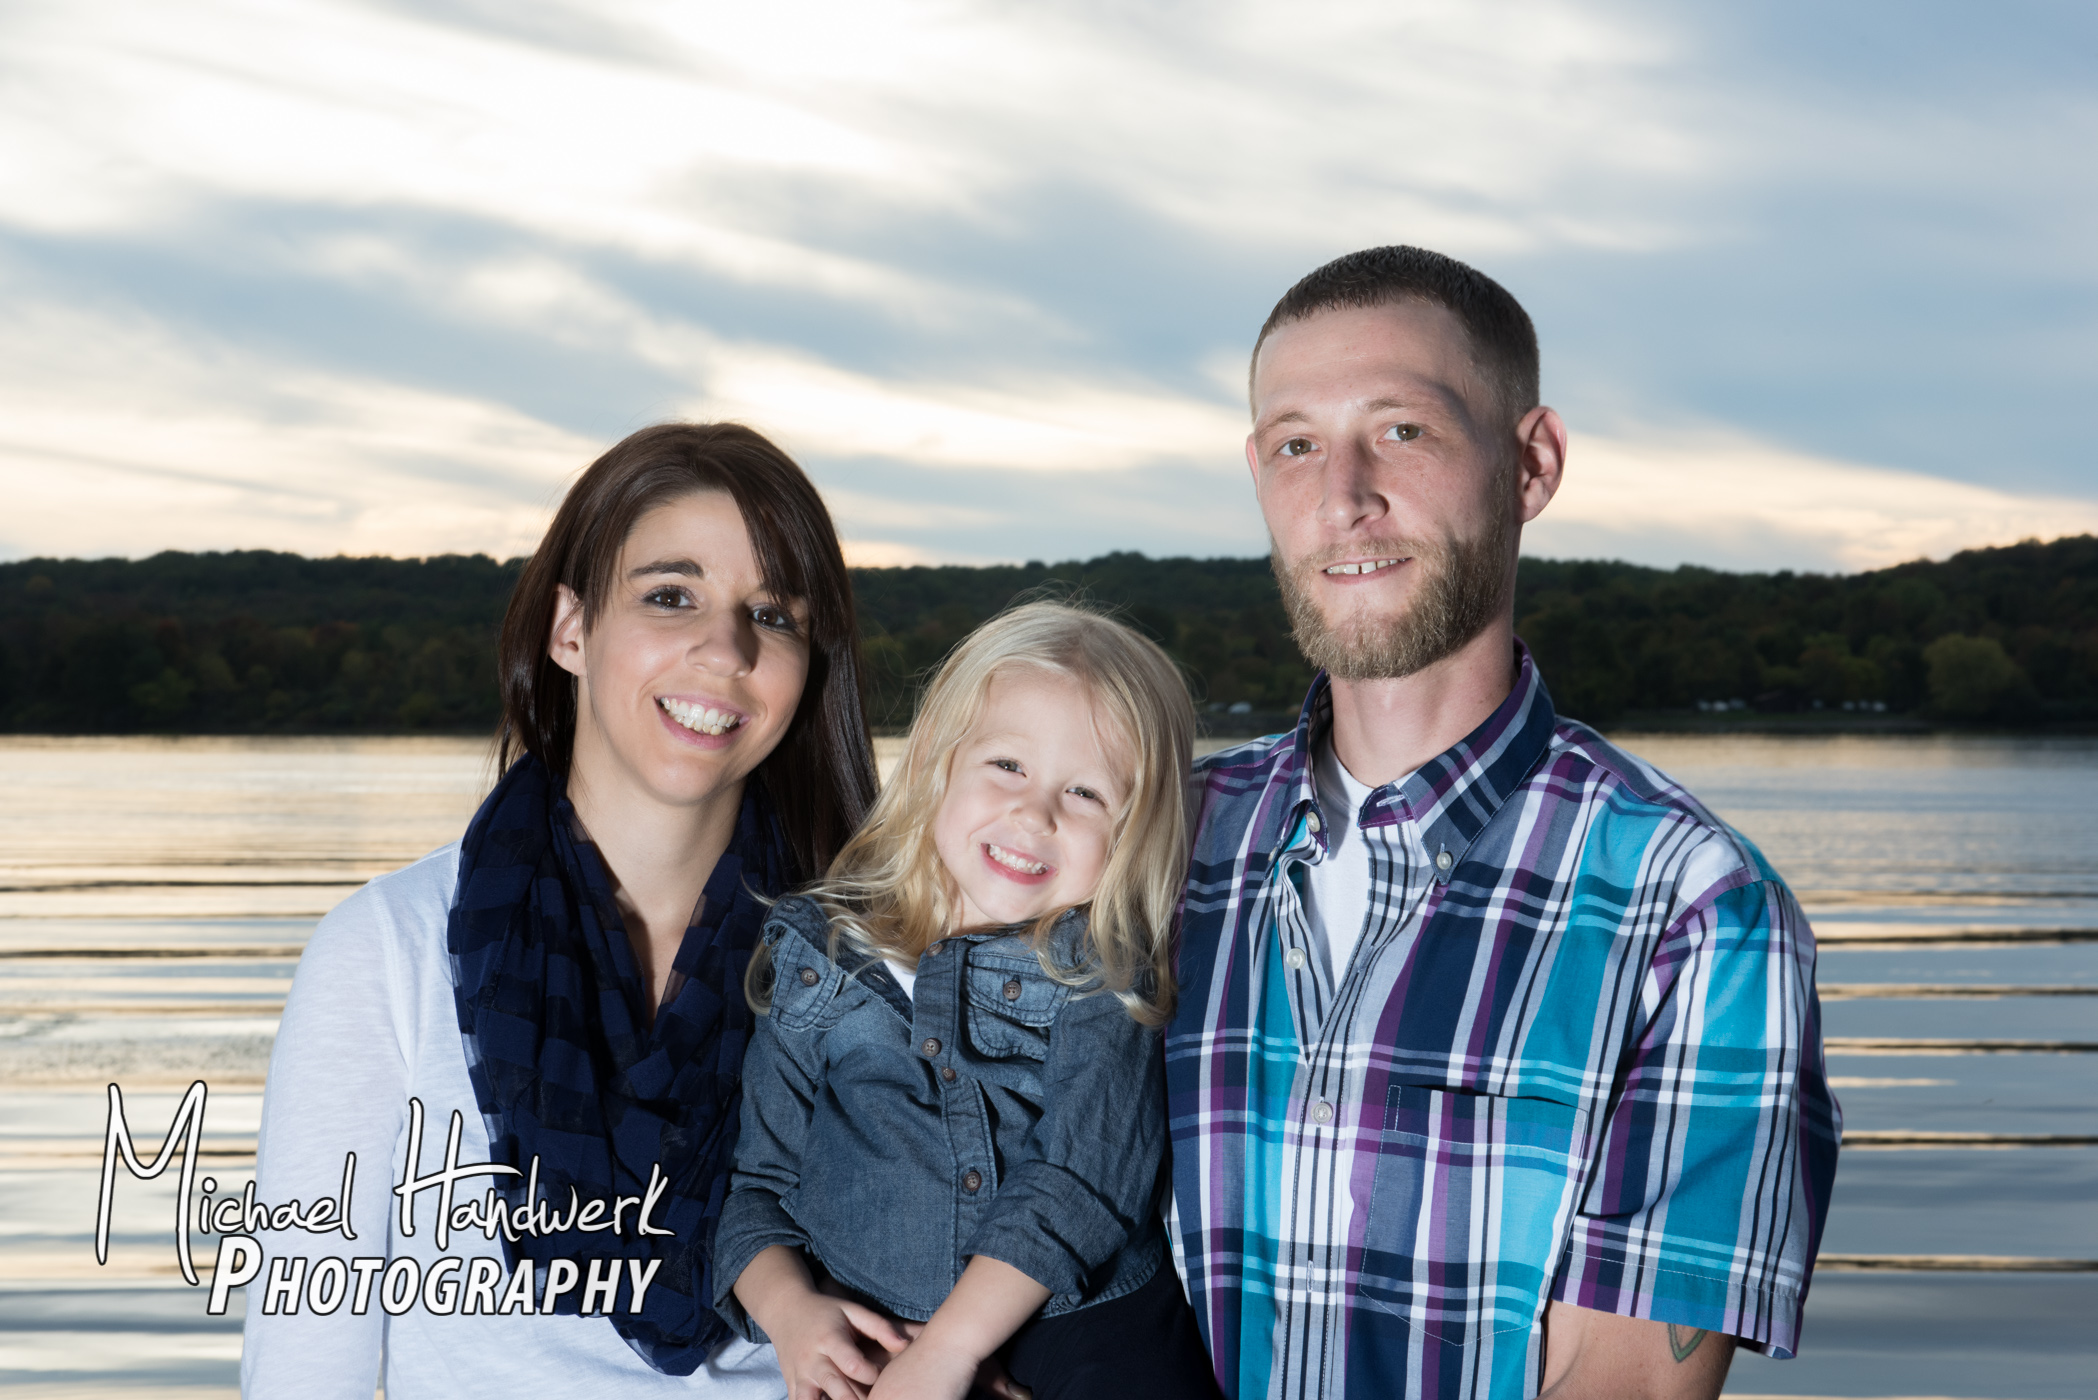 Wedding Photographer - Phoenixville PA 19460 » Cheap ...